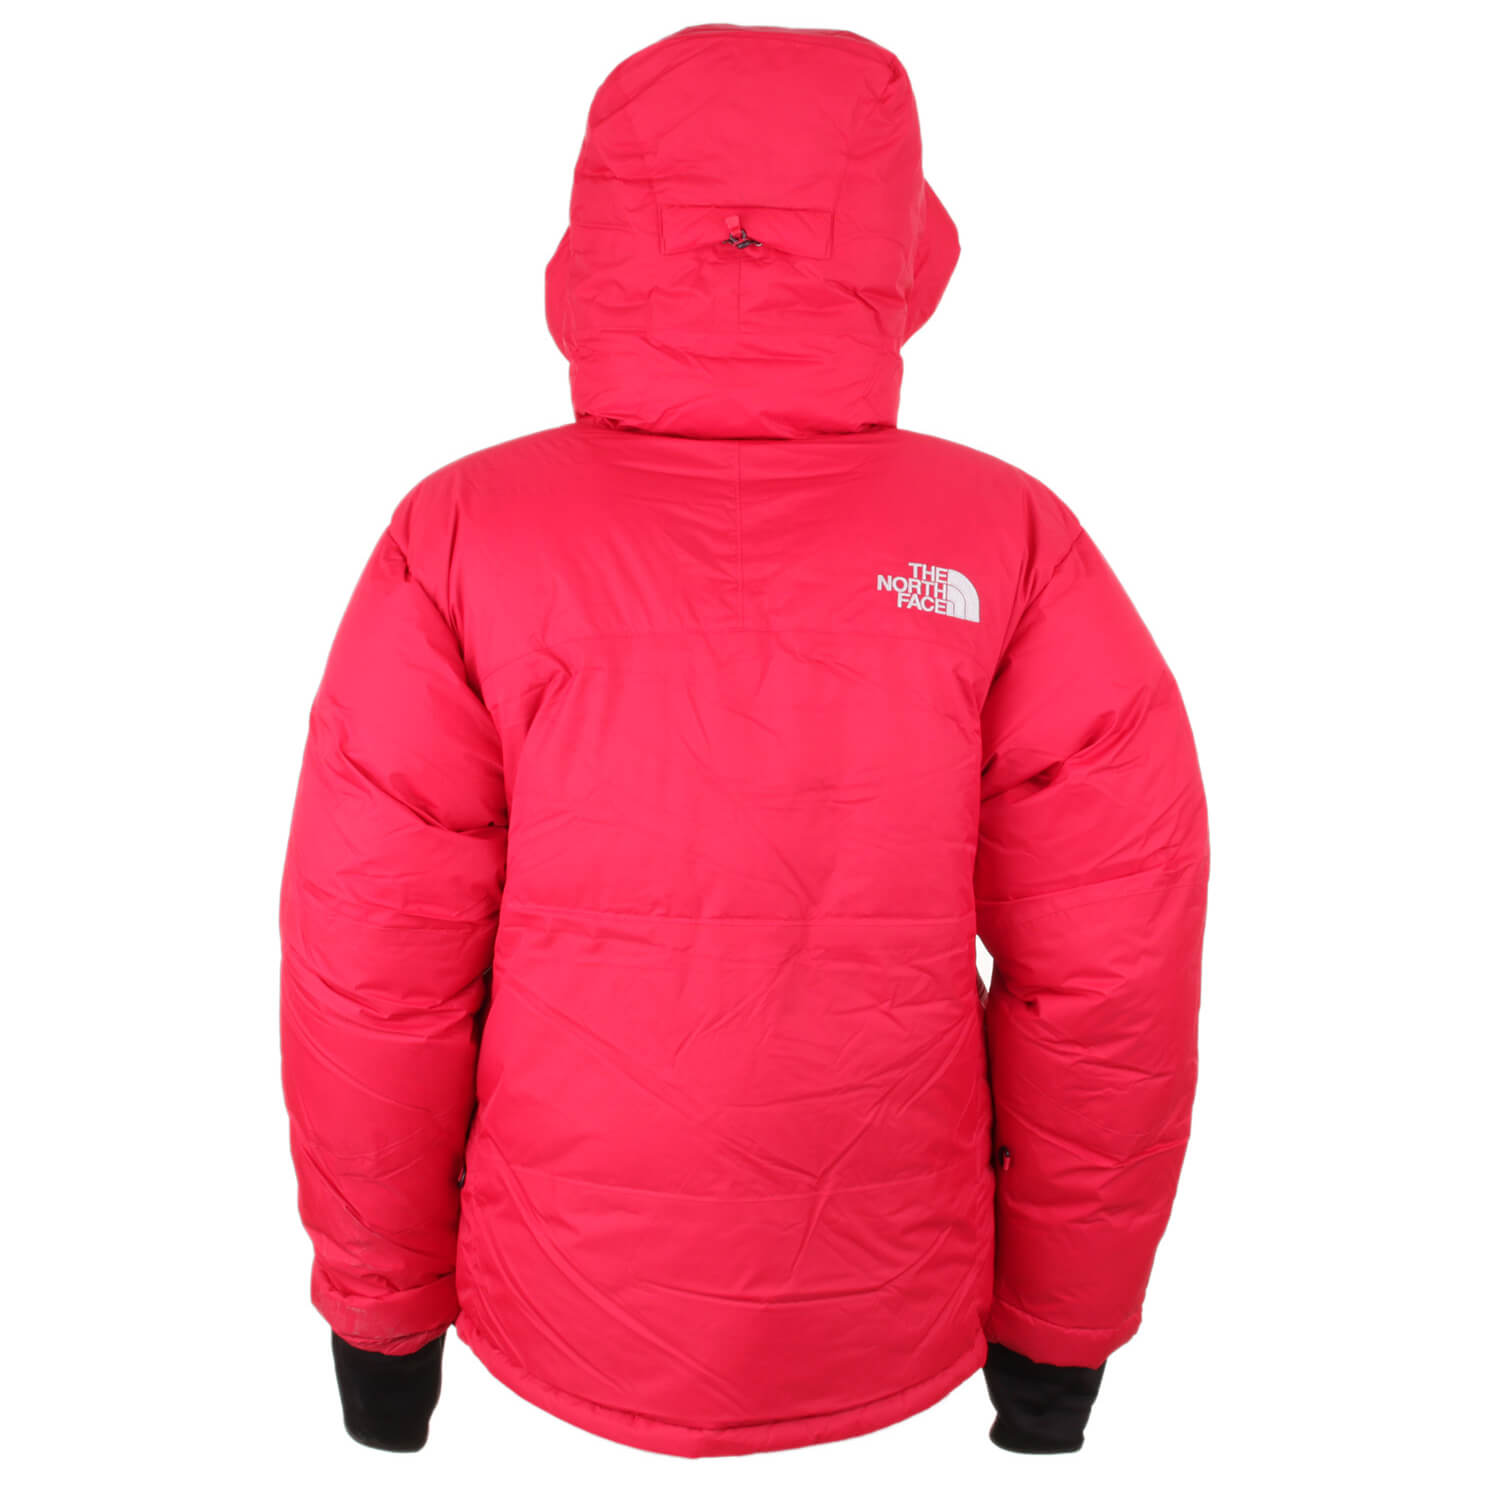 be72c5a99a The North Face Himalayan Parka - Down Jacket Men's | Free UK ...